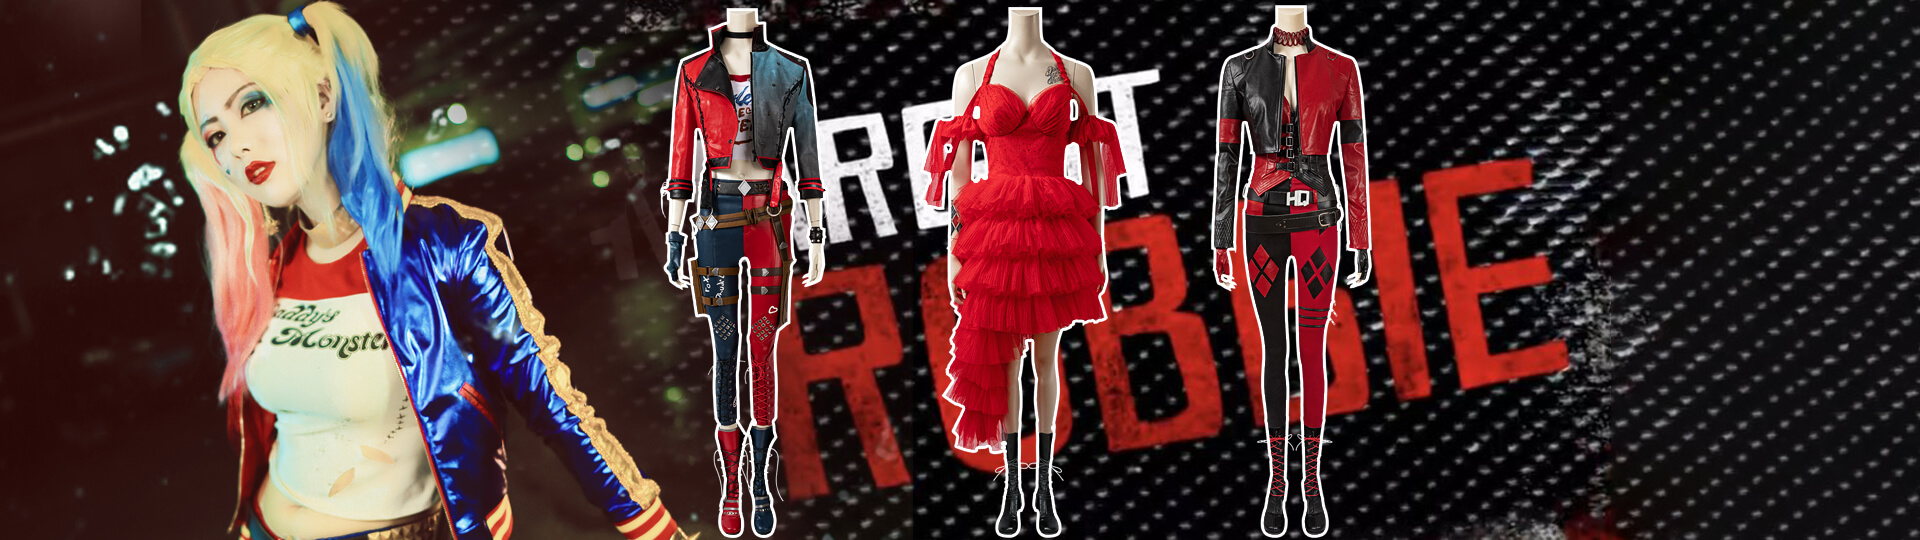 cosmanles harley quinn cosplay costumes